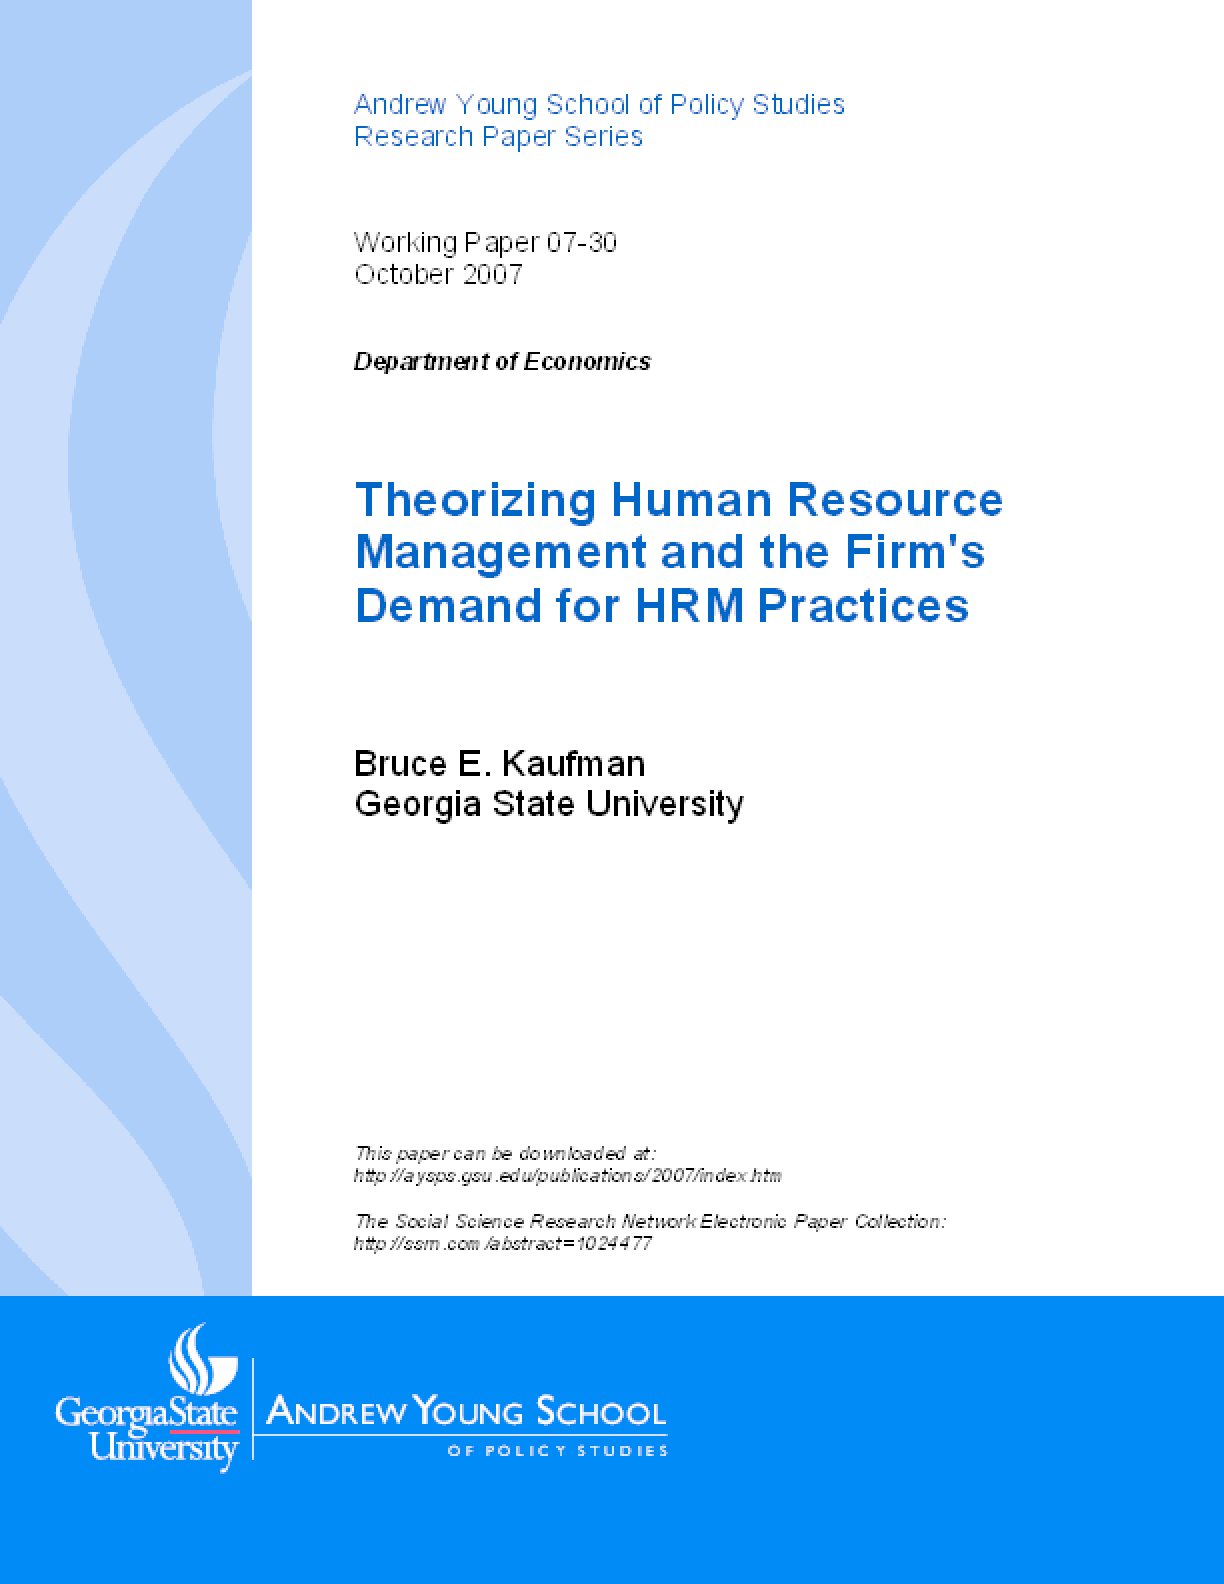 Theorizing Human Resource Management and the Firm's Demand for HRM Practices